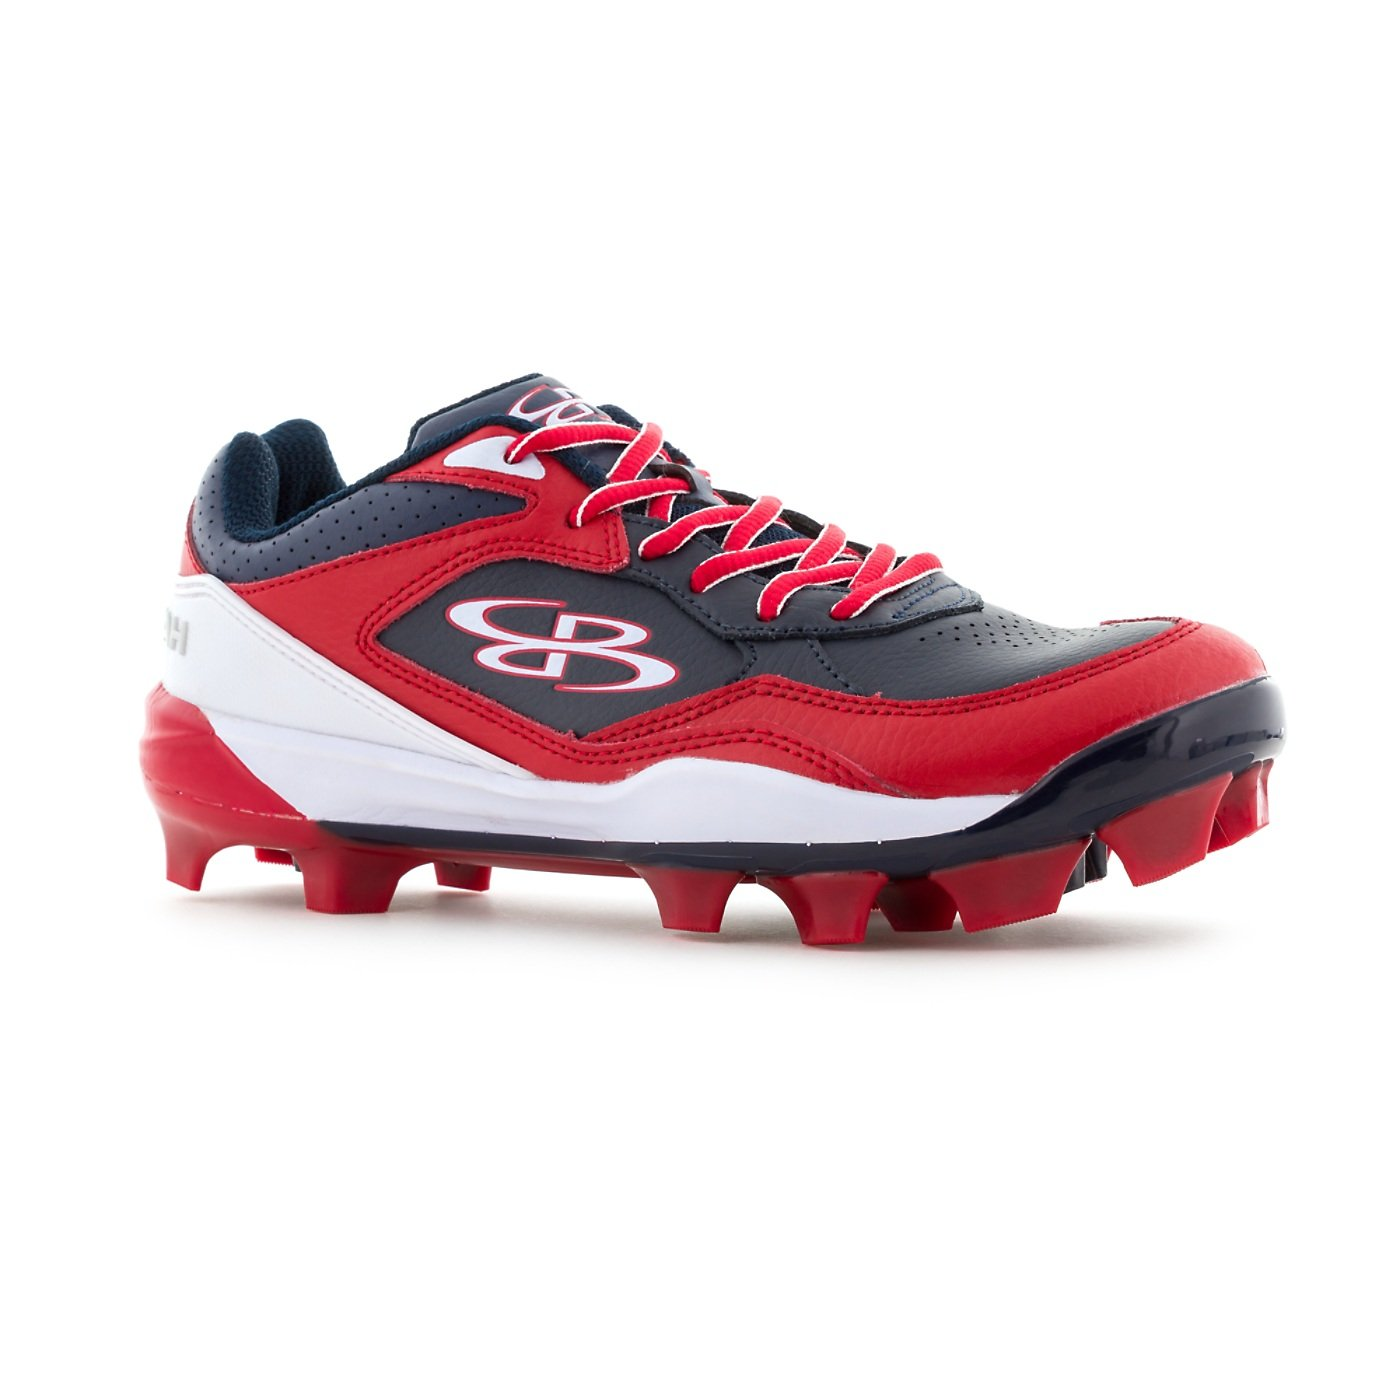 07a92b395 Boombah Women s Endura Molded Cleats - 18 Color Options - Multiple Sizes  larger image